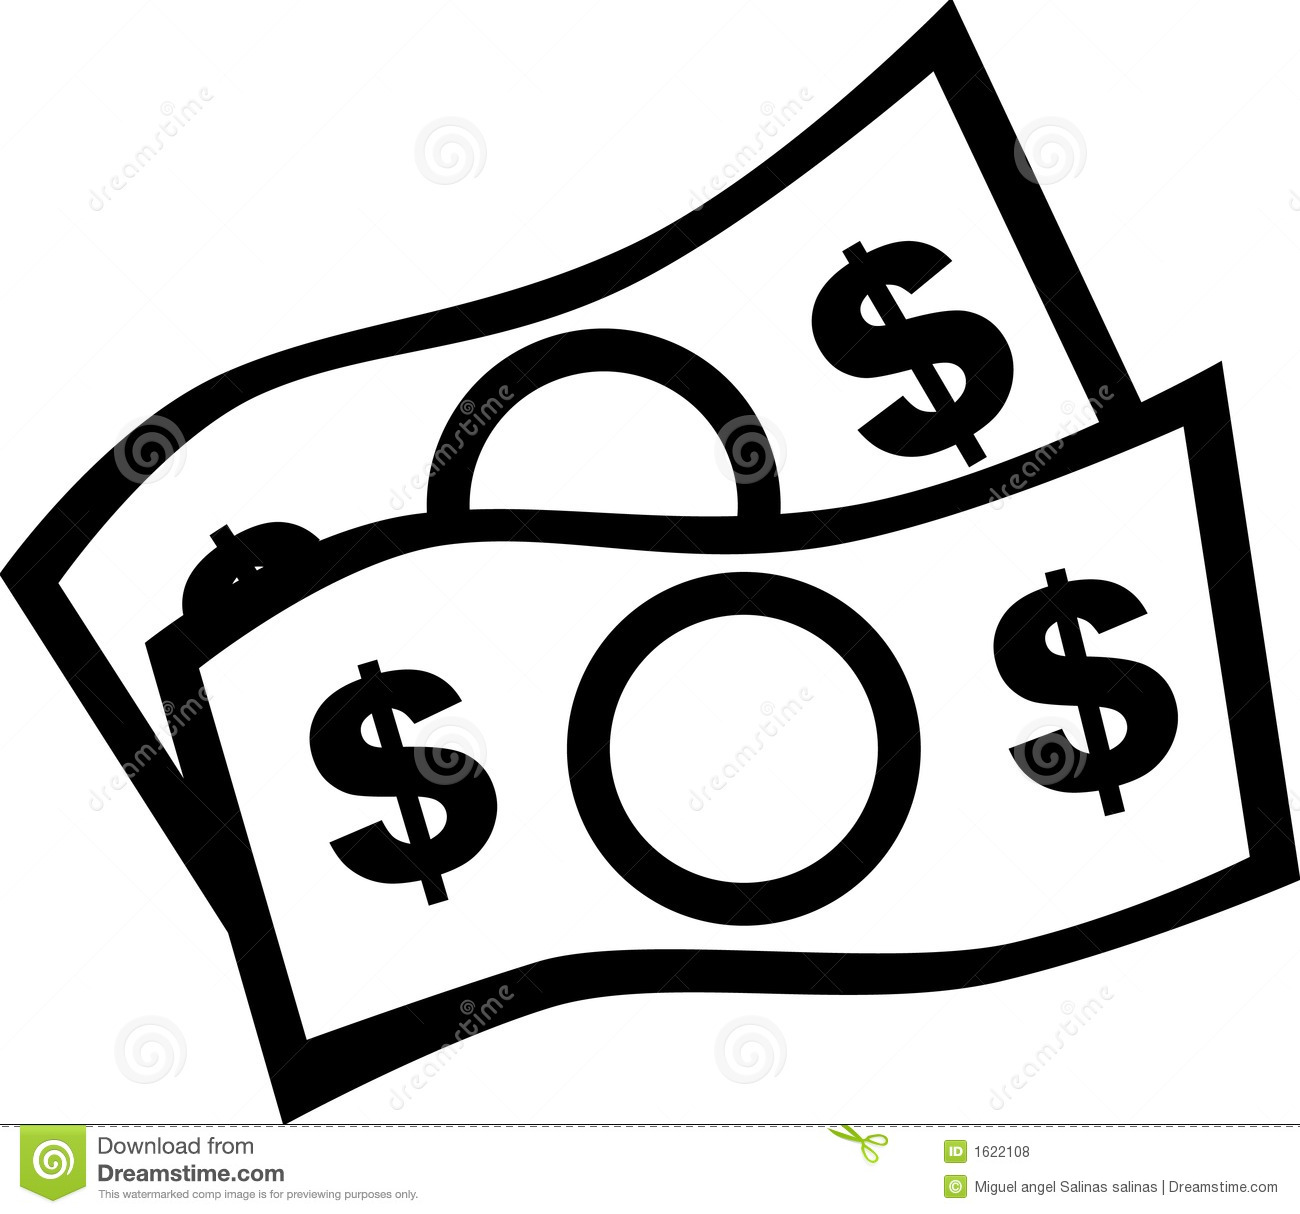 One dollar bill clipart black and white banner stock Money Bills Clipart | Free download best Money Bills Clipart ... banner stock